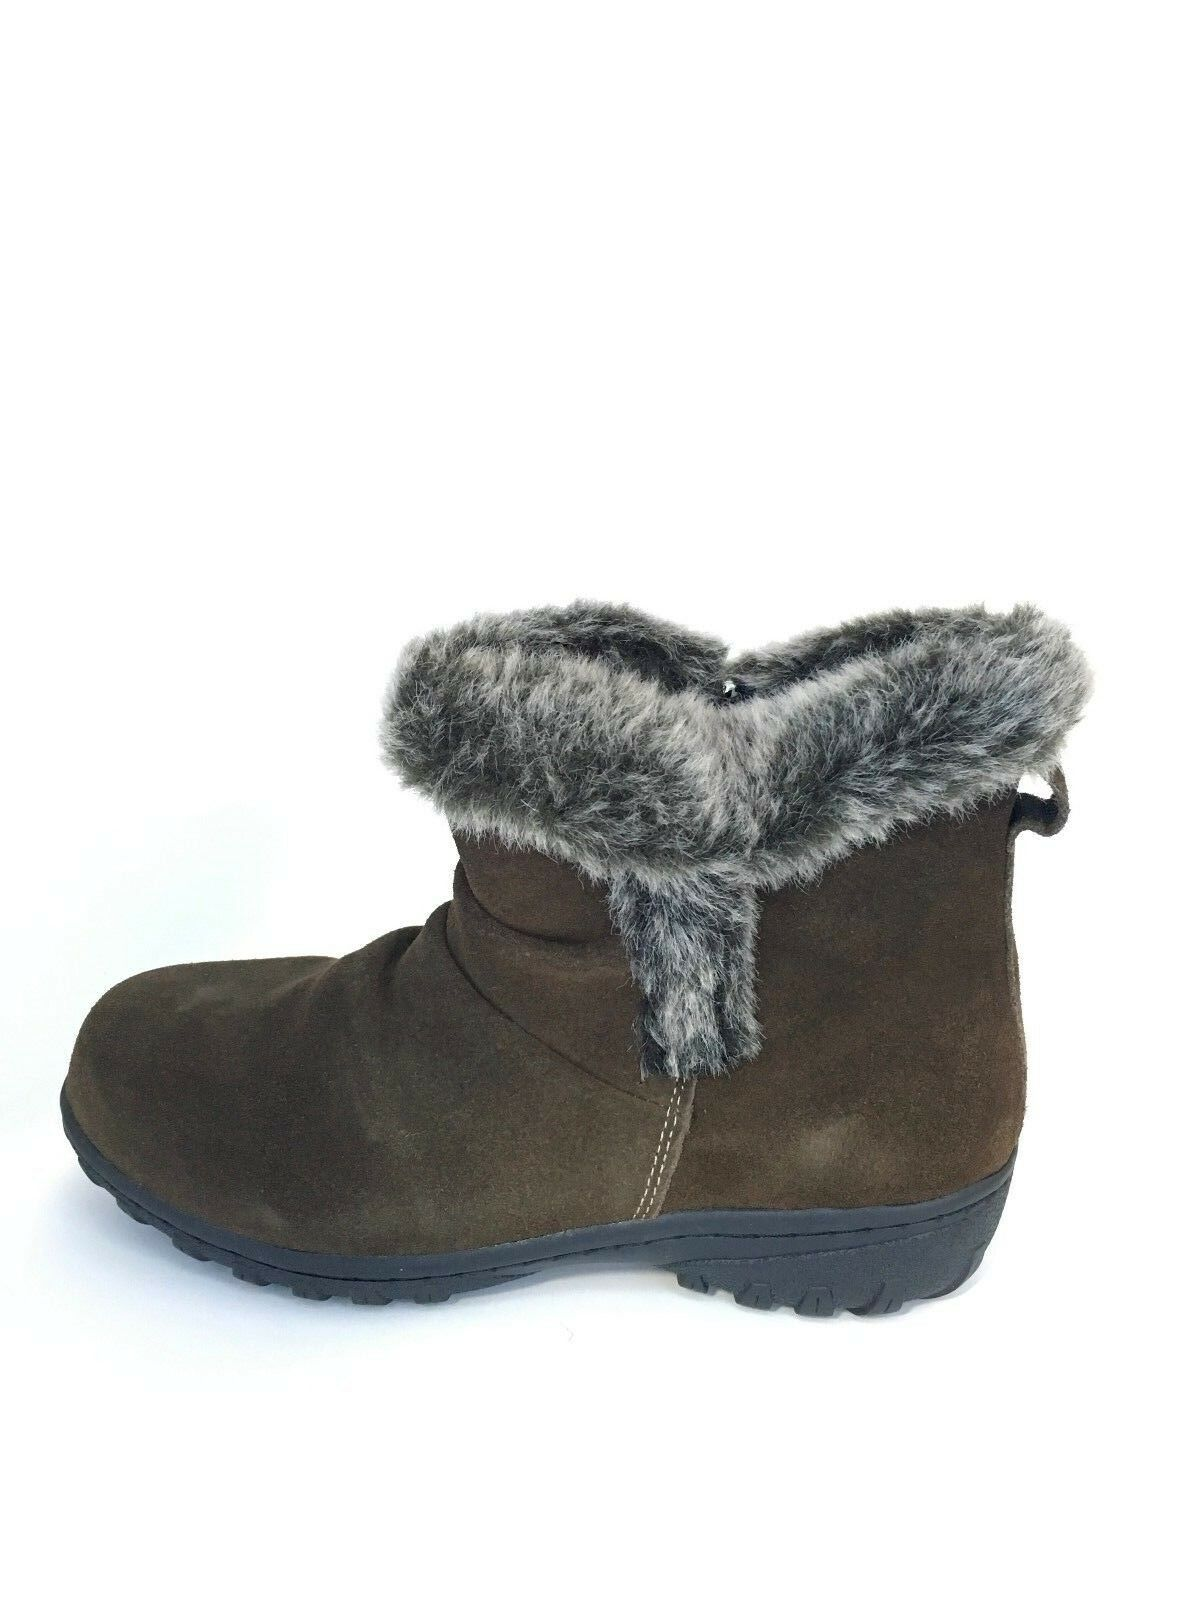 NEW - Khombu Women's Lisa All Weather Snow Winter Boots Brown - Pick Size